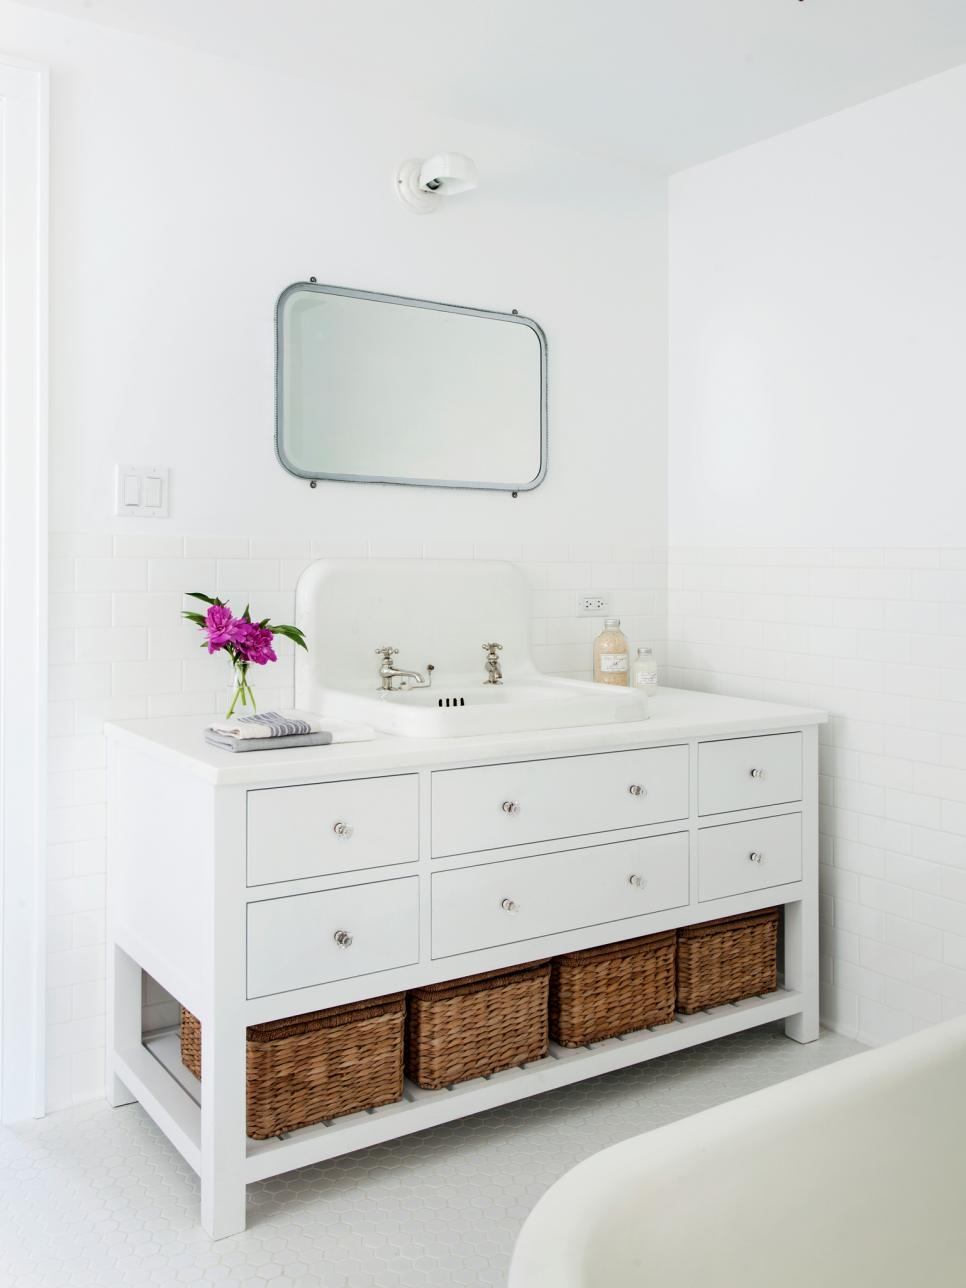 Bathroom Vanity With Basket Storage